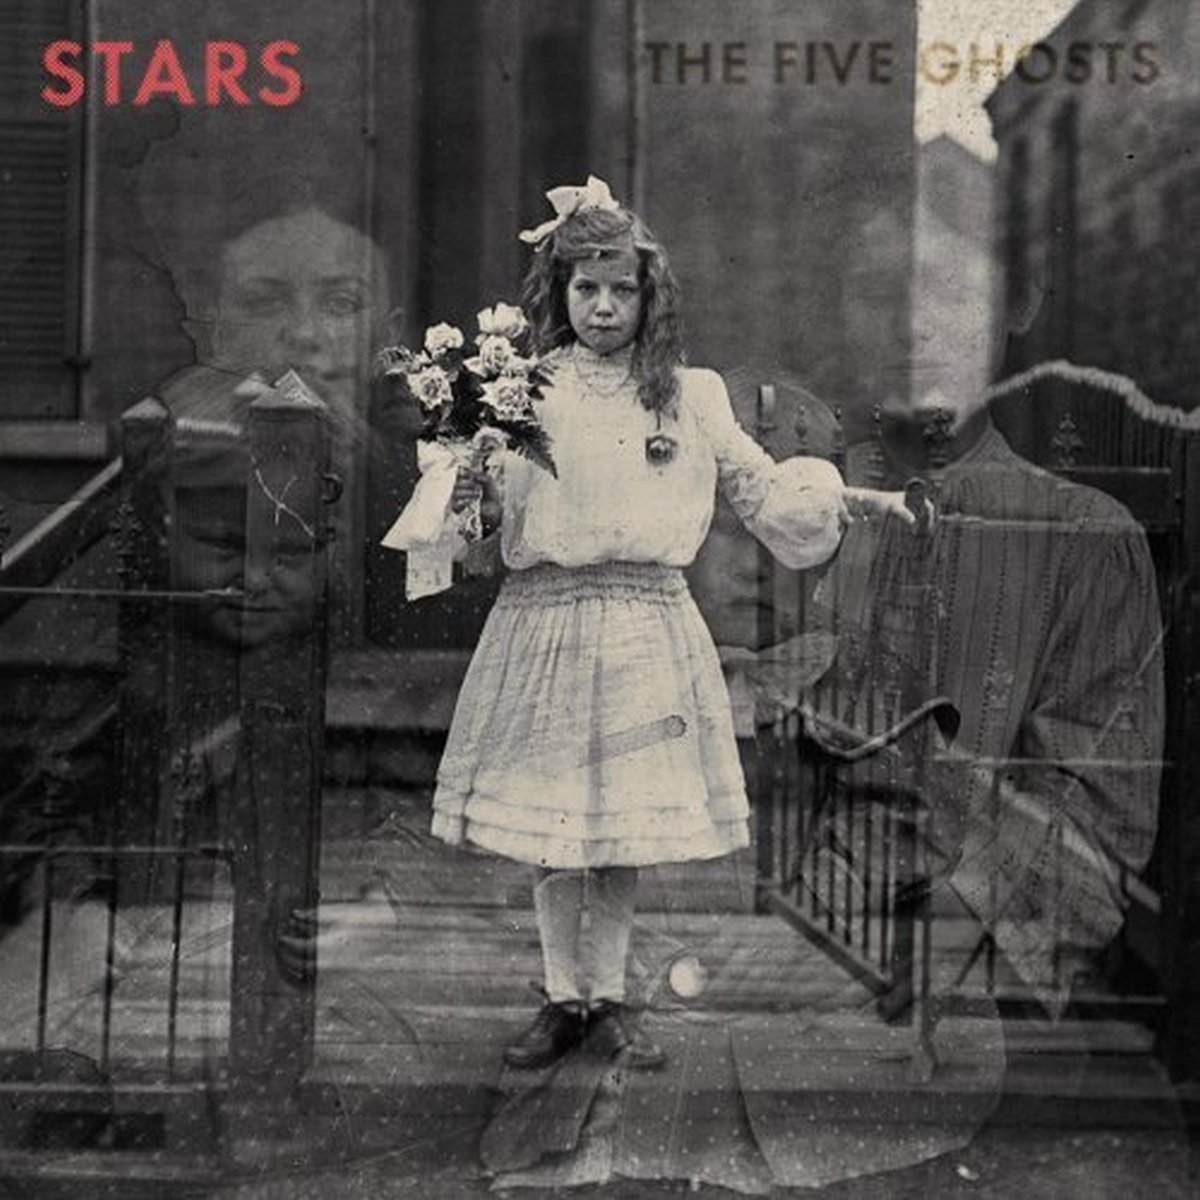 Stars, The Five Ghosts